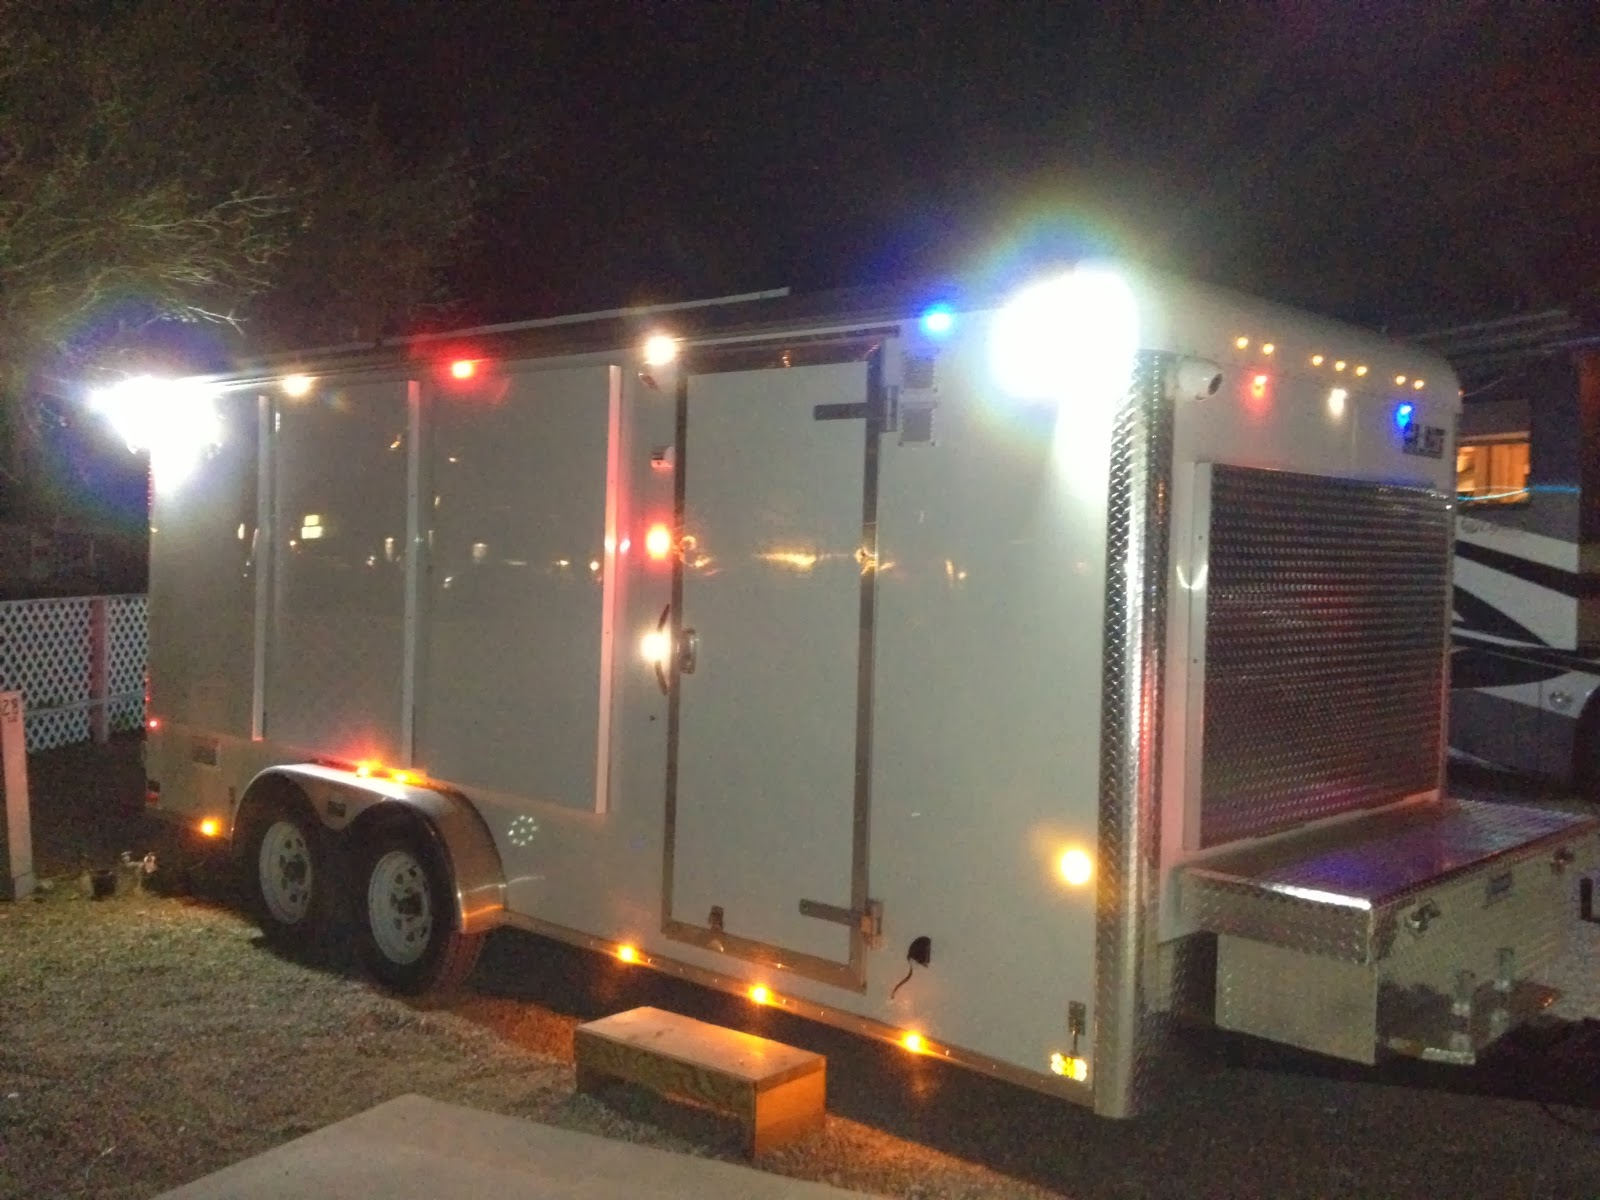 2013 Carmate 100 Solar Heated And Cooled Over The Top Cargo Trailer Pictures From Az Rv Show